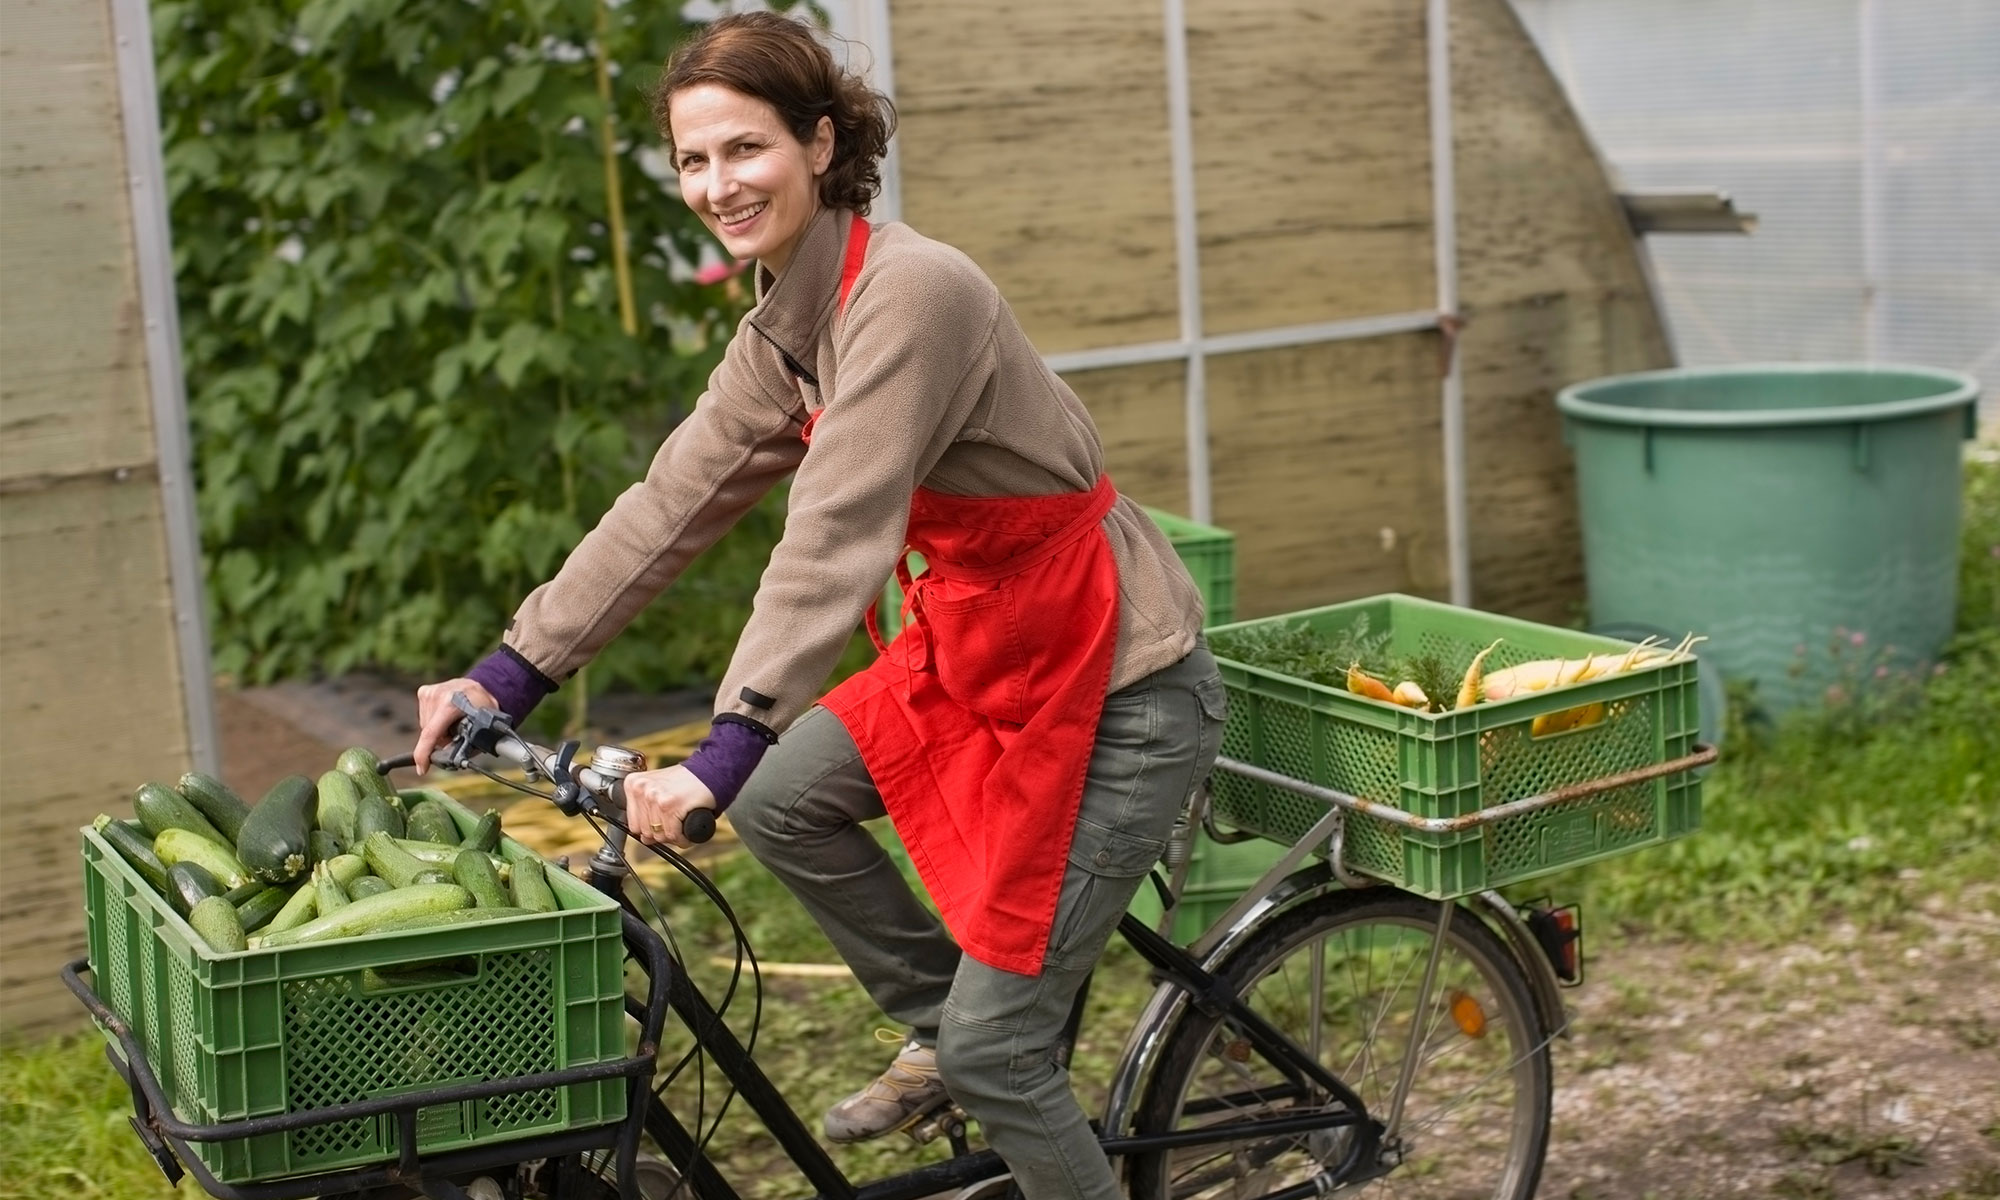 Woman on a bike carrying vegetables.